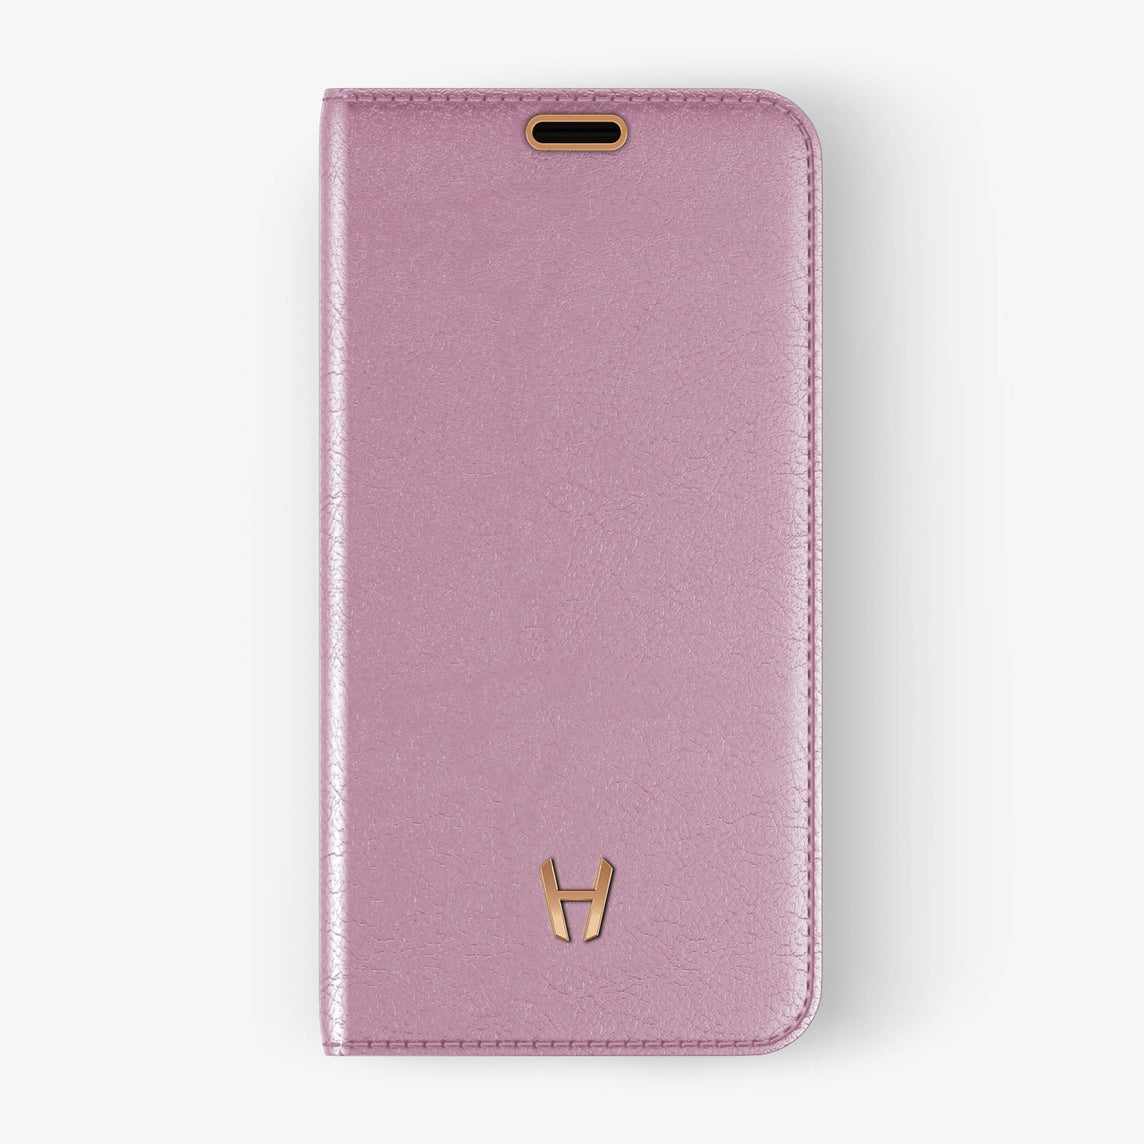 Pink Calfskin iPhone Folio Case for iPhone XS Max finishing rose gold - Hadoro Luxury Cases - img1